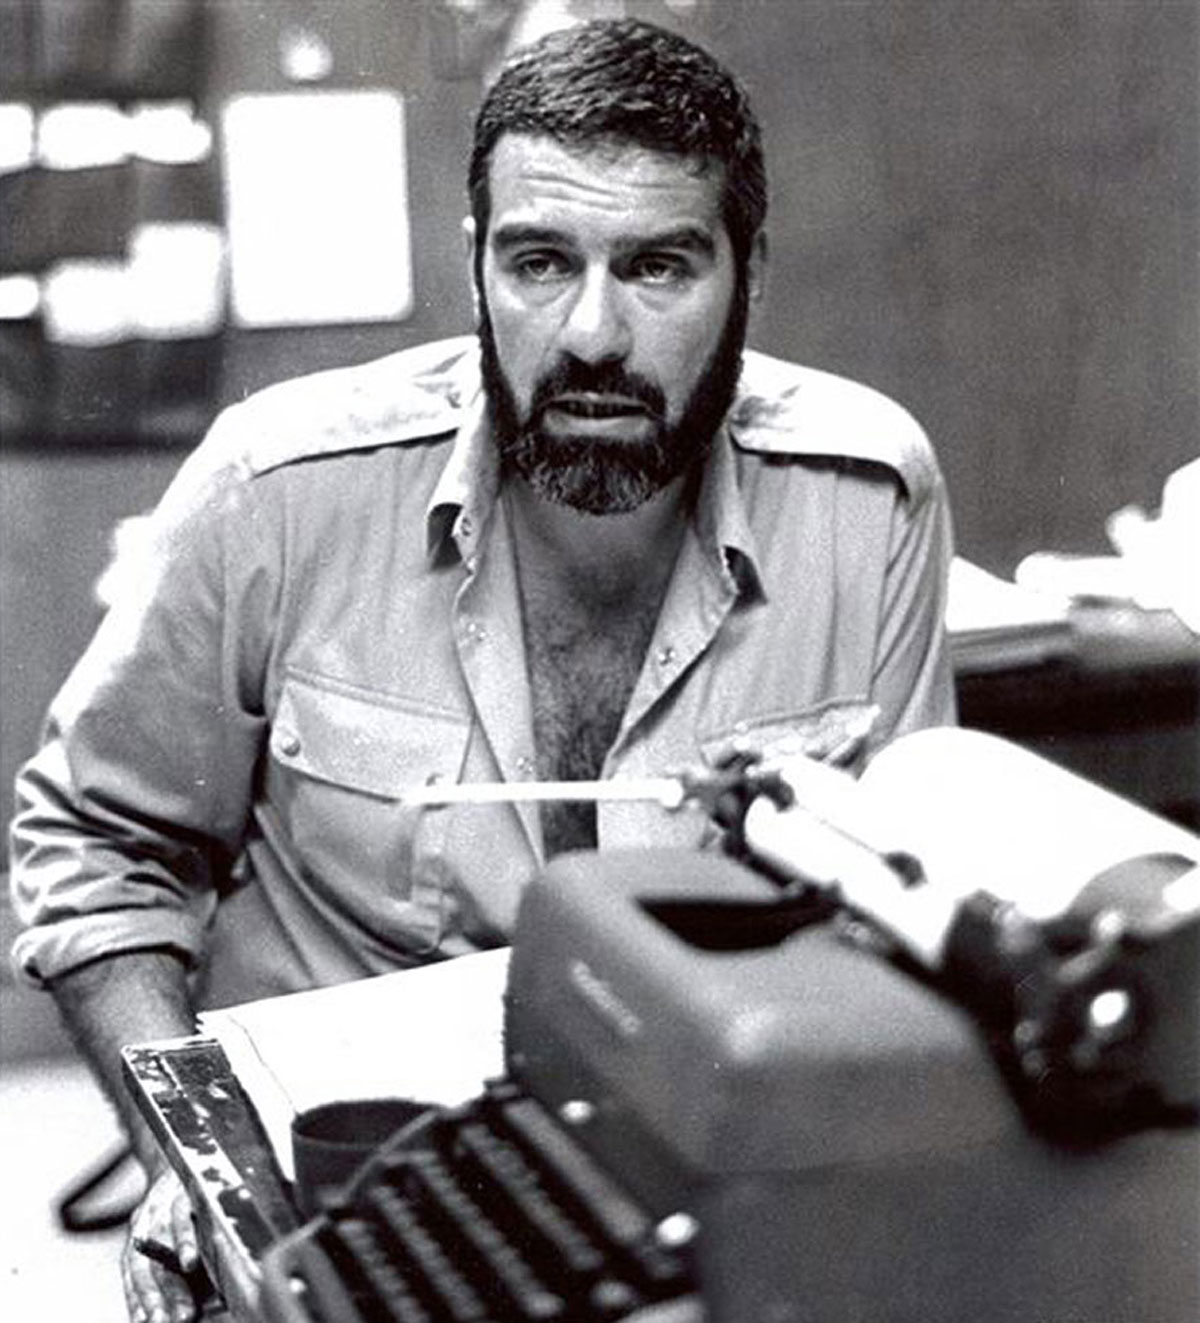 Sergei Dovlatov in the office of 'The New American' newspaper, 1980.